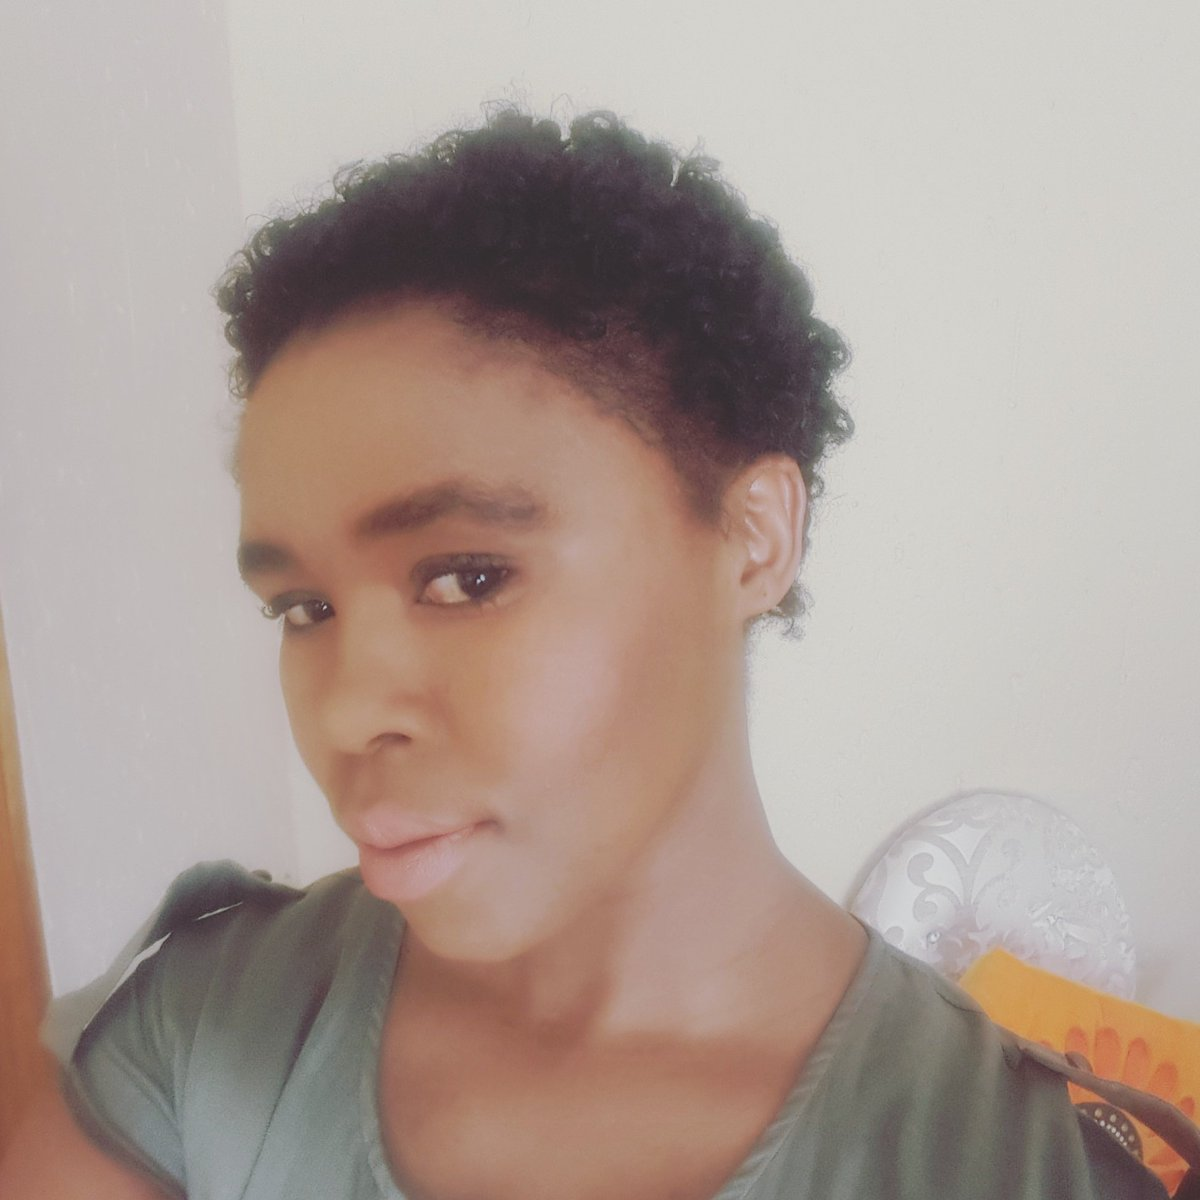 Molweni bethunana, #CountryGirlInternational just cut her hair, new season new me...#stayfresh https://t.co/BYK11ZRd7Z